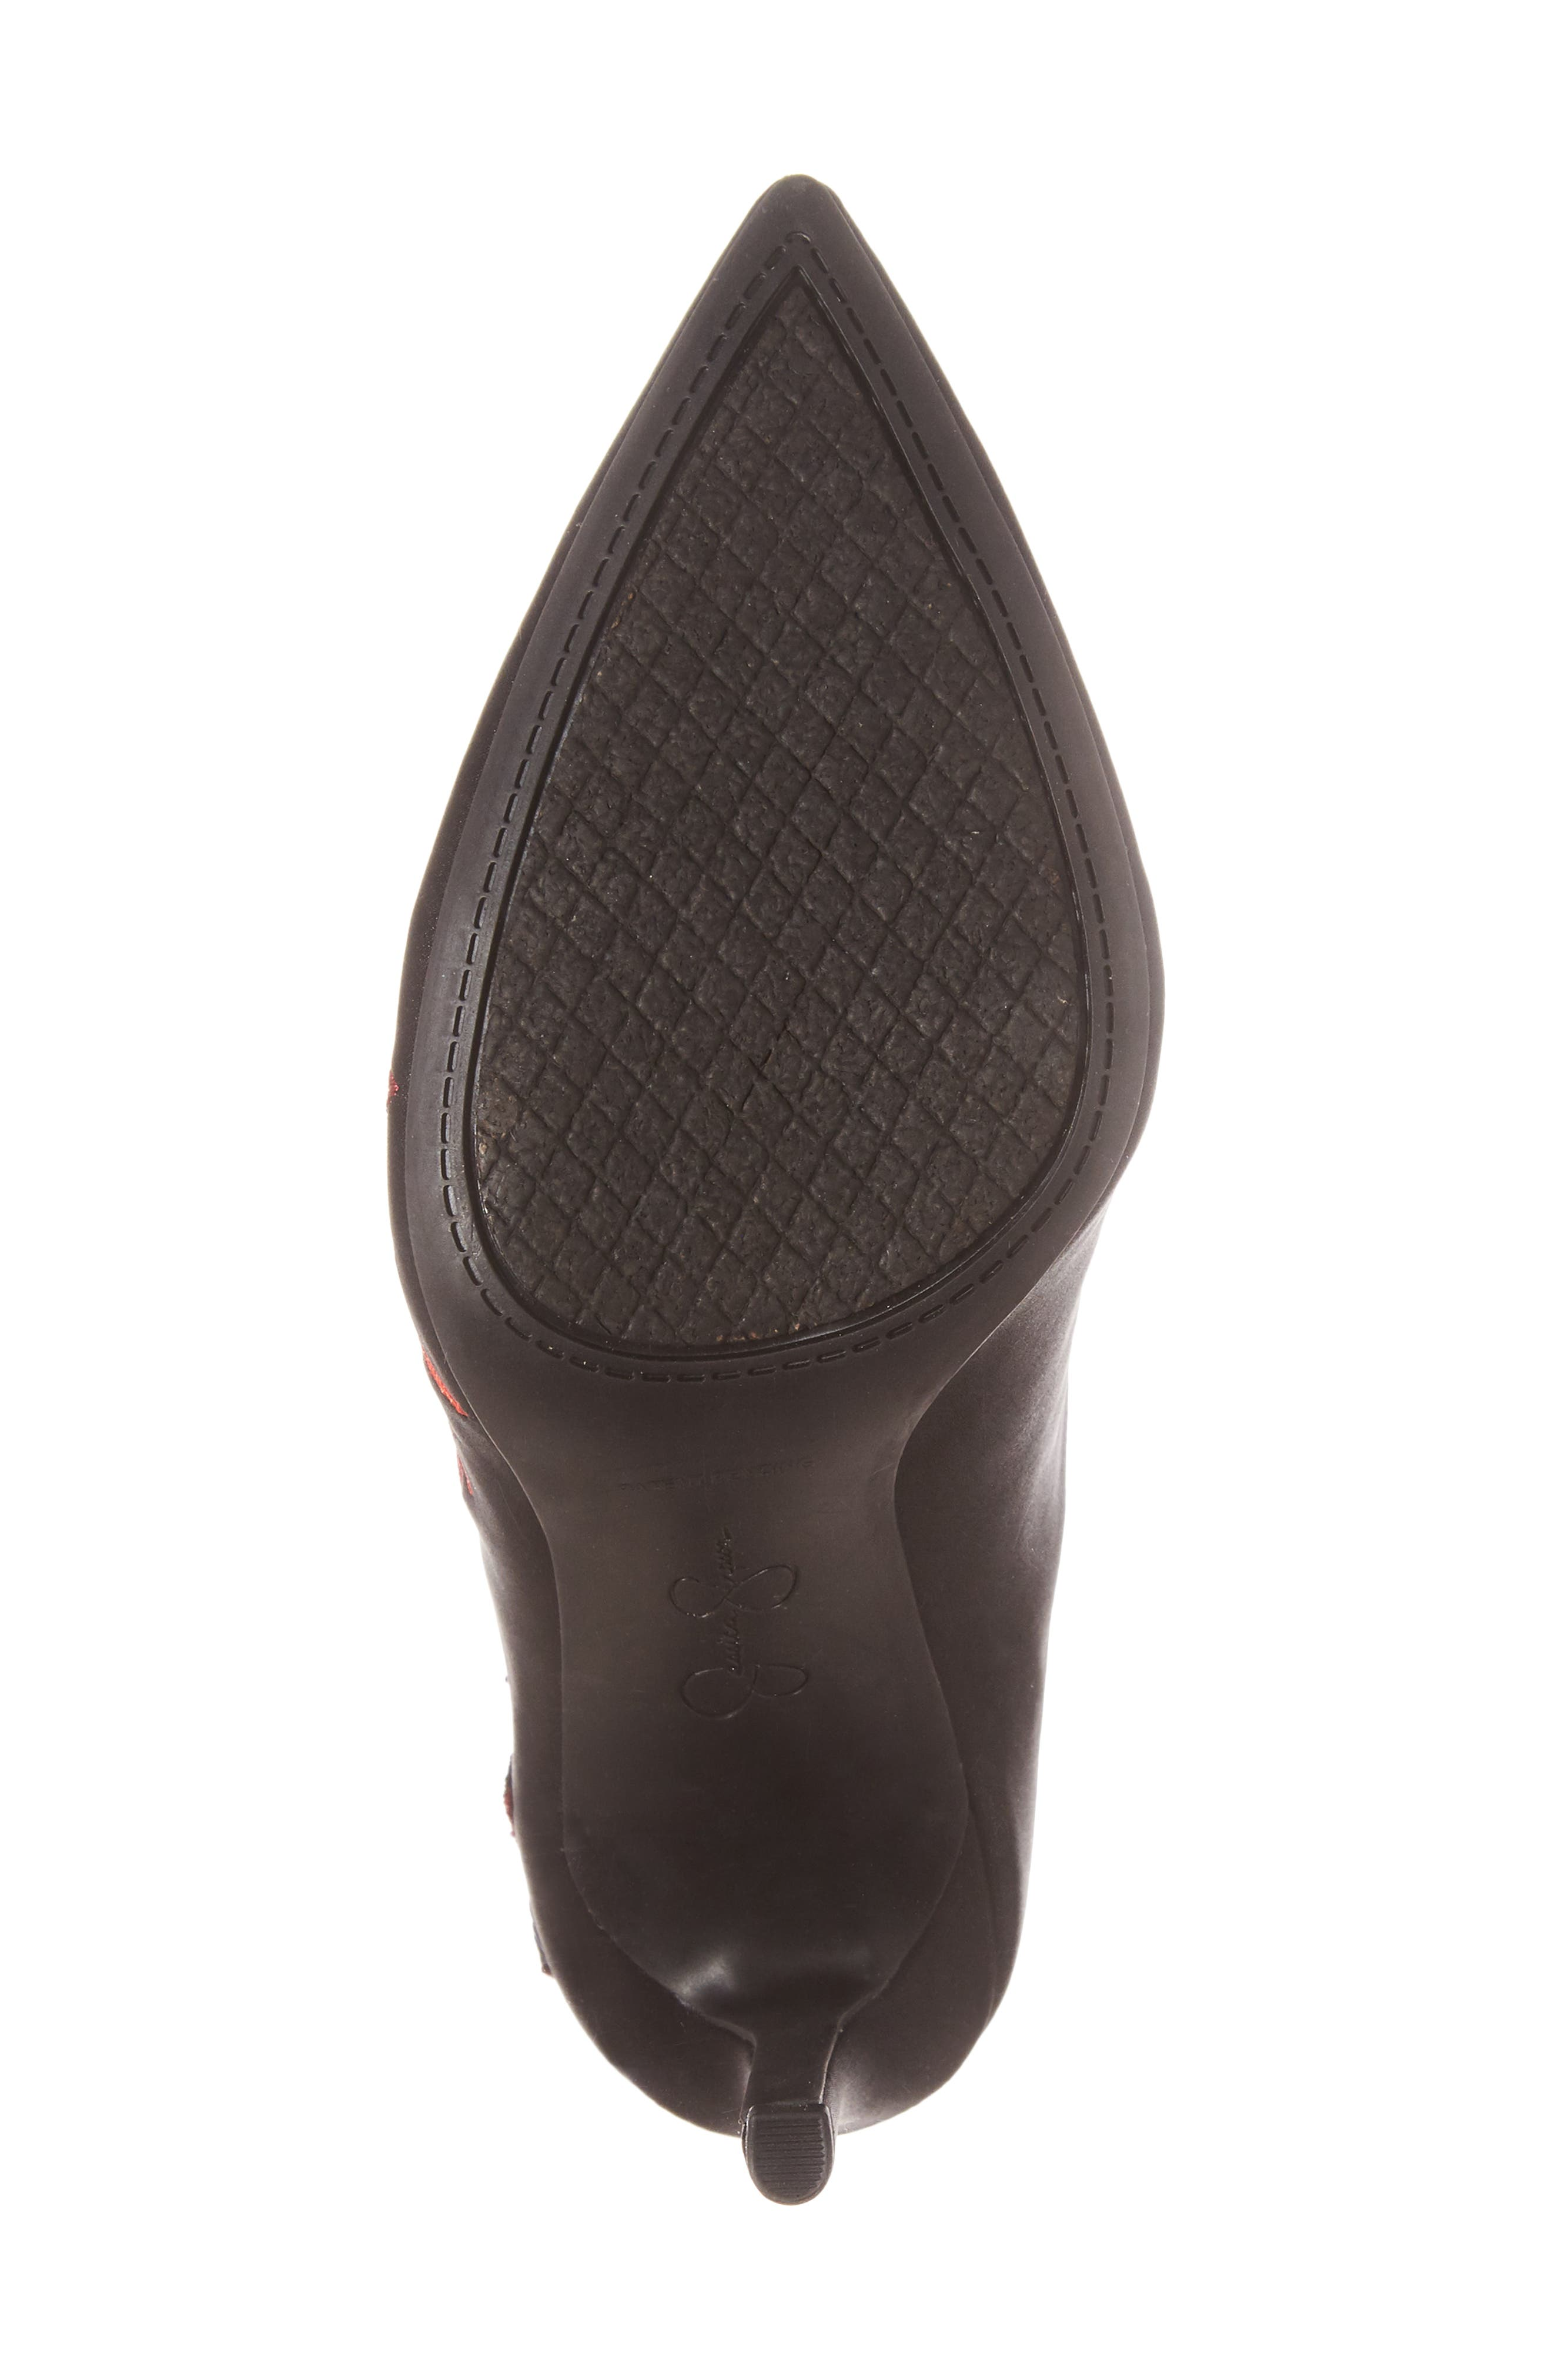 Pelanna Appliqué Stretch Bootie,                             Alternate thumbnail 6, color,                             001